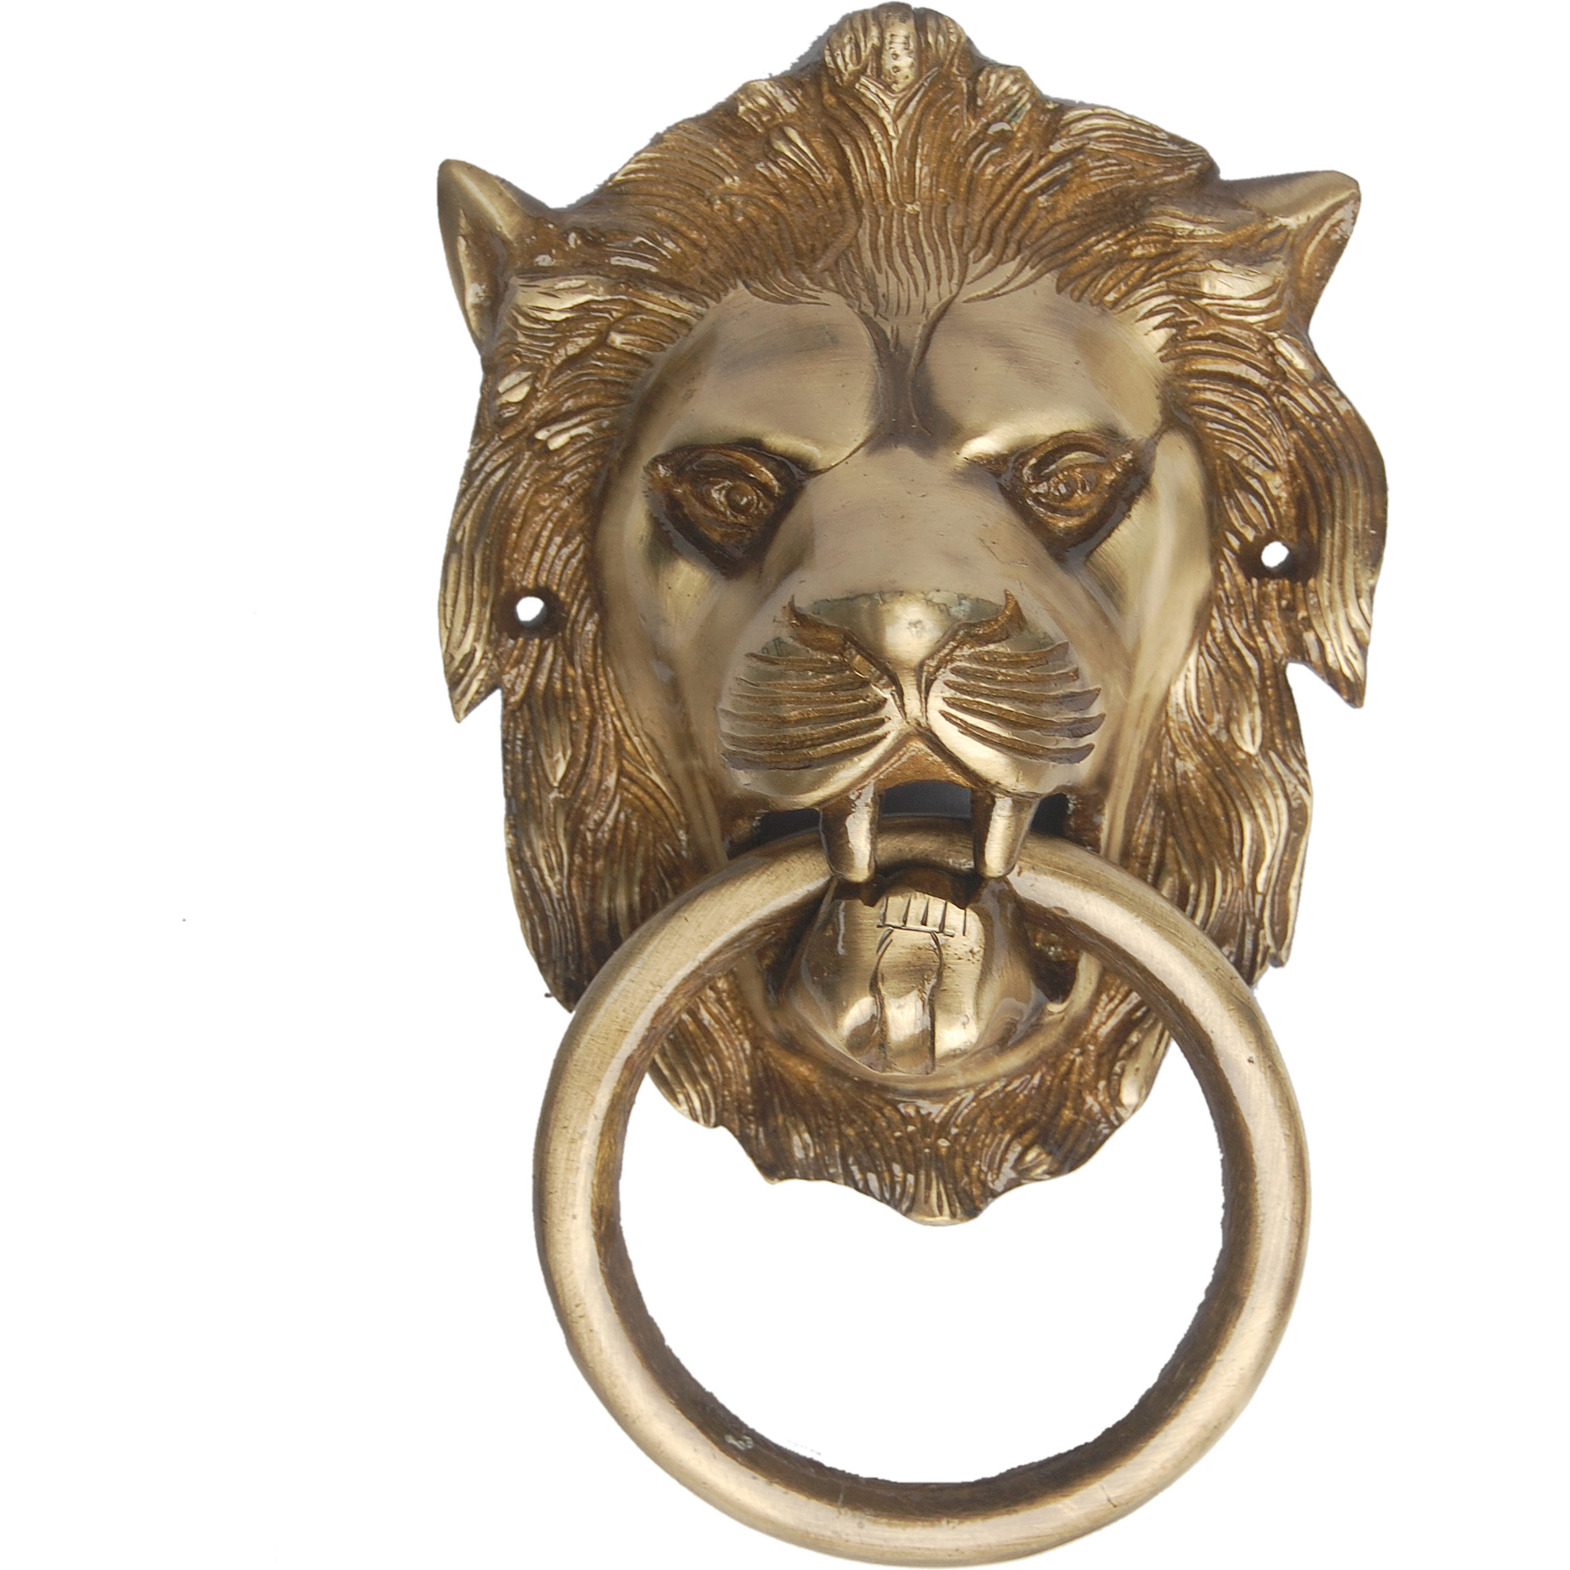 Aakrati Lion Door Knocker in Antique Finish